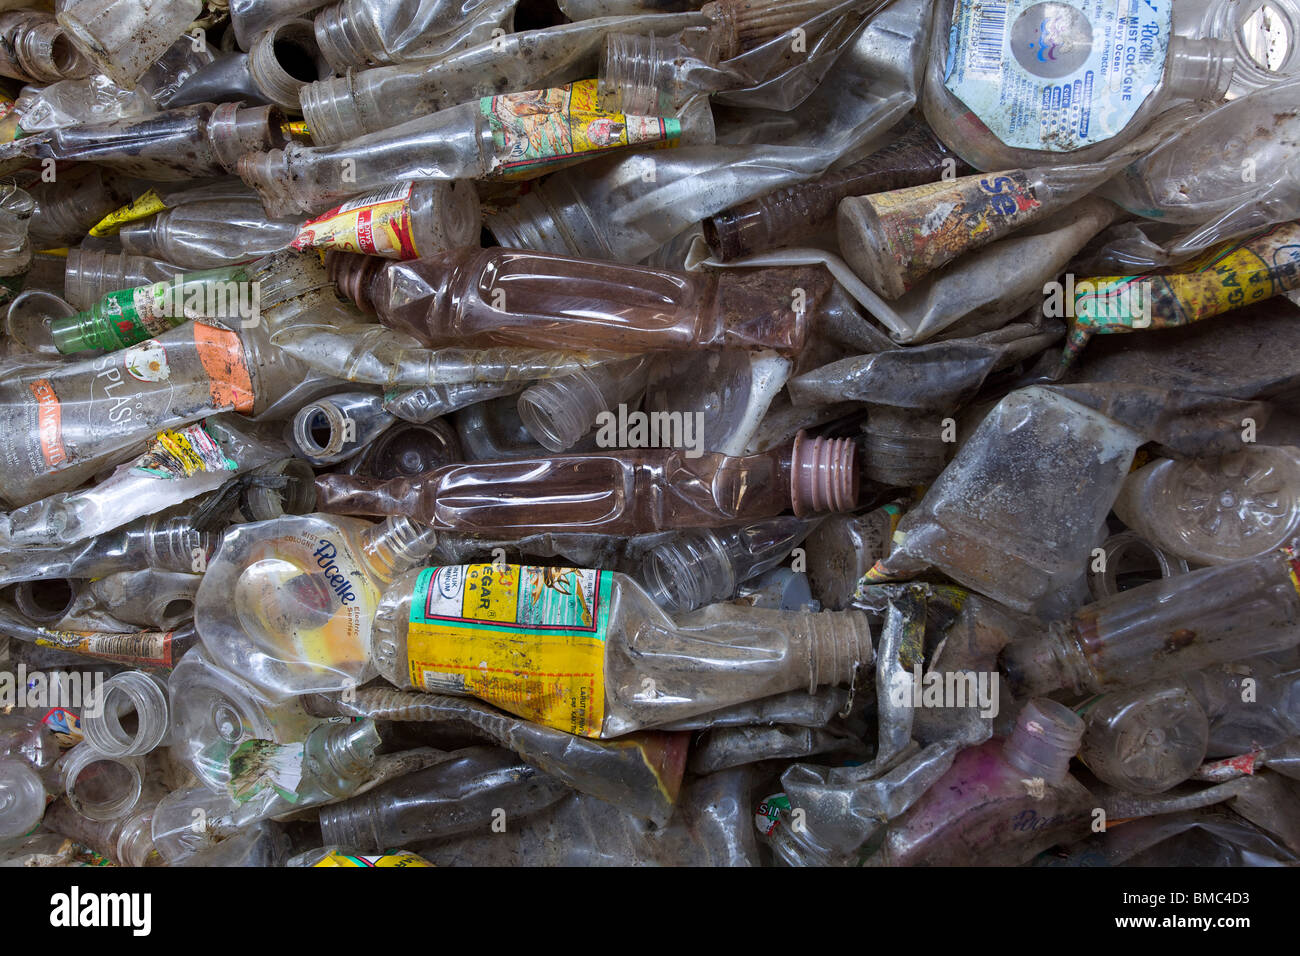 Crushed plastic bottle waste at a waste recycling plant - Stock Image